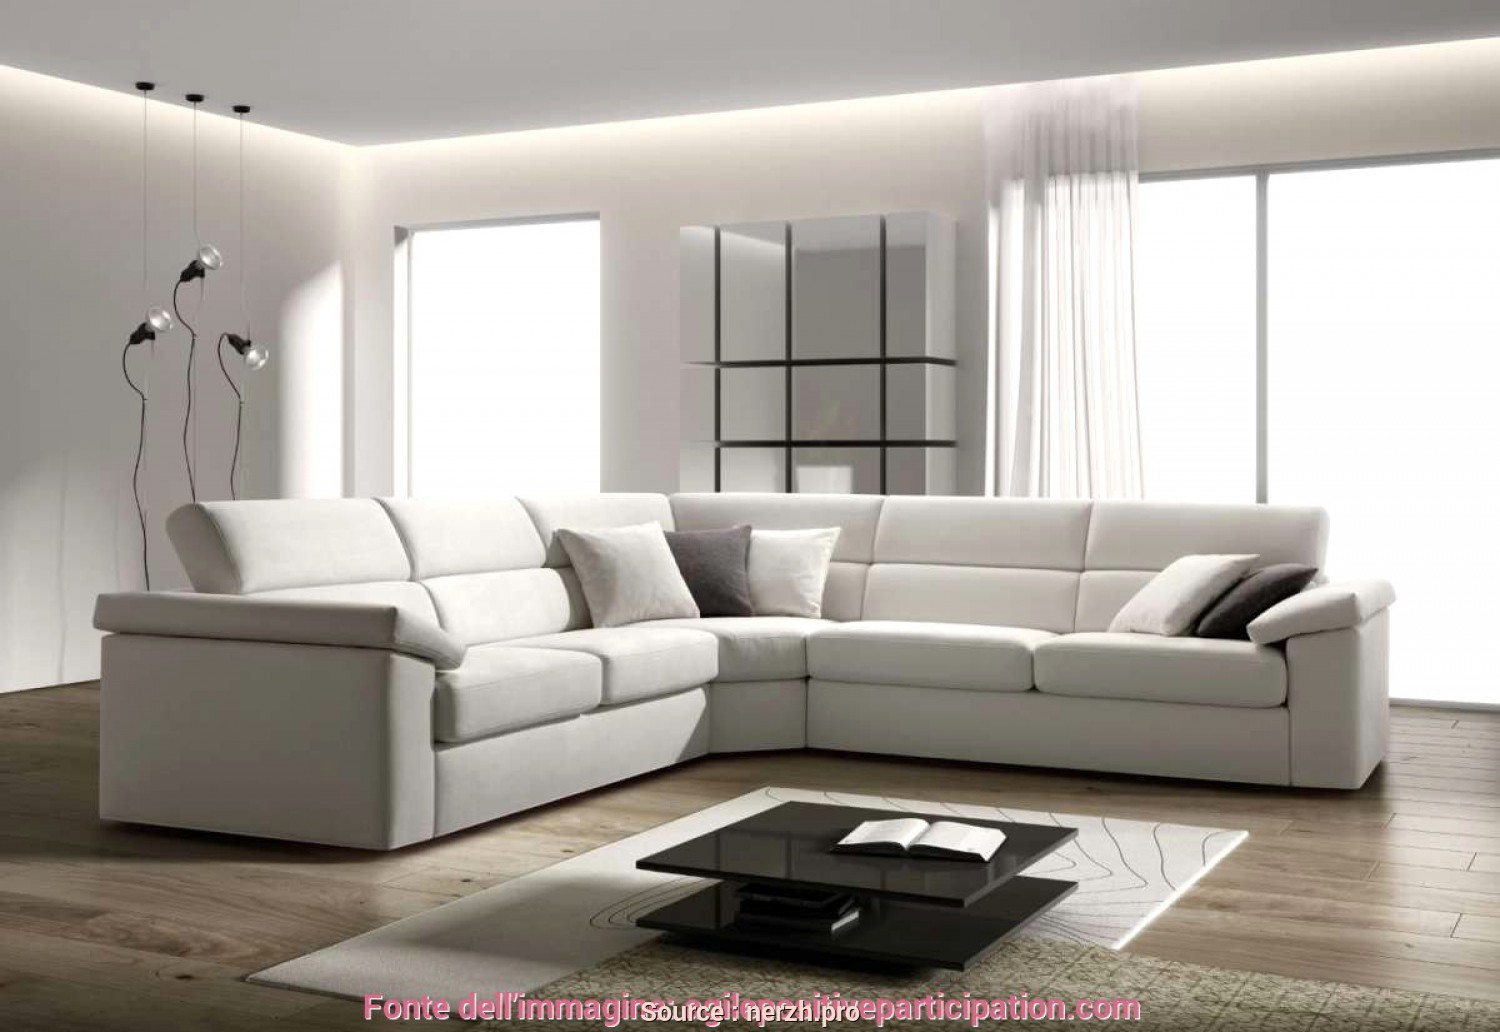 Incredibile 5 Poltrone Sofa Divani Angolari